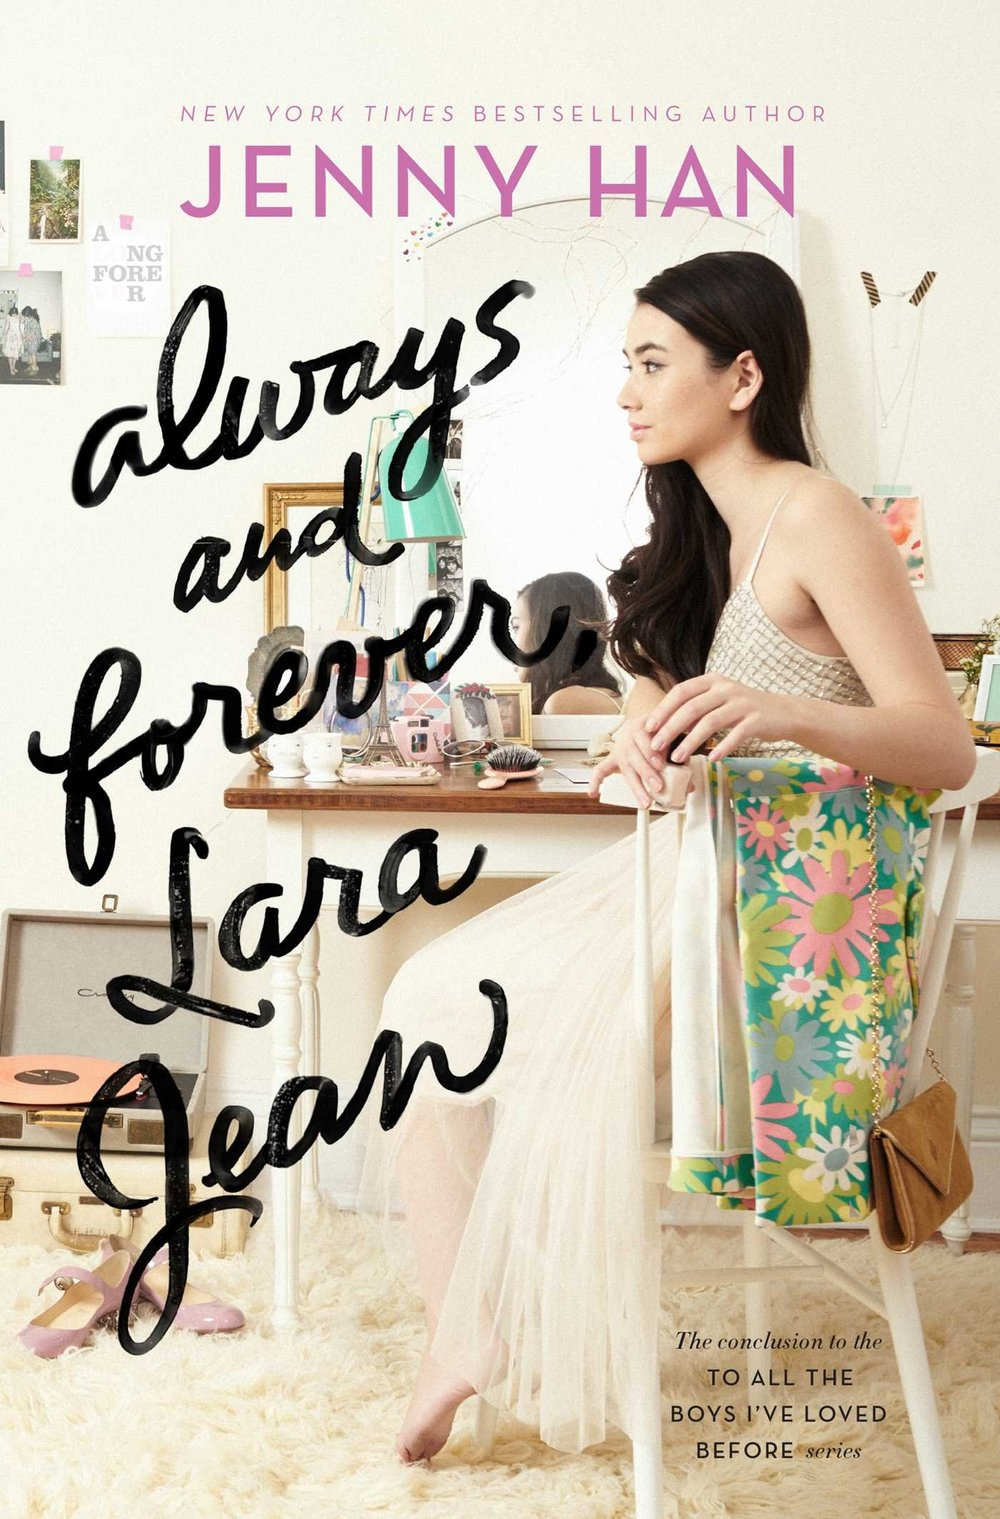 Always and Forever, Lara Jean by Jenny Han - Simon & Schuster Books for Young Readers For people hungry for complex and dimensional female characters for young audiences—Lucia, External Relations Manager